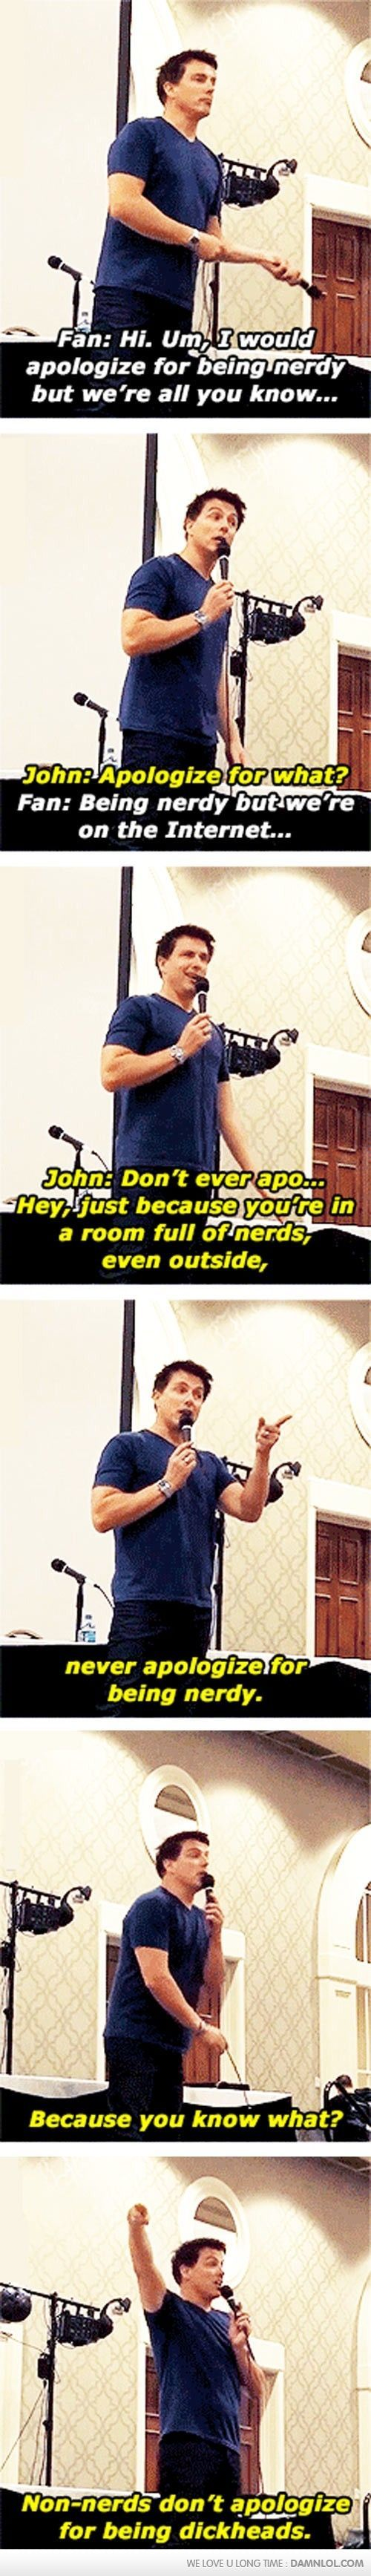 Never, Never apologize for being what makes you the happiest! Unless what makes you happy is being a dickhead. The just don't even come near me. Thanks, John Barrowman.